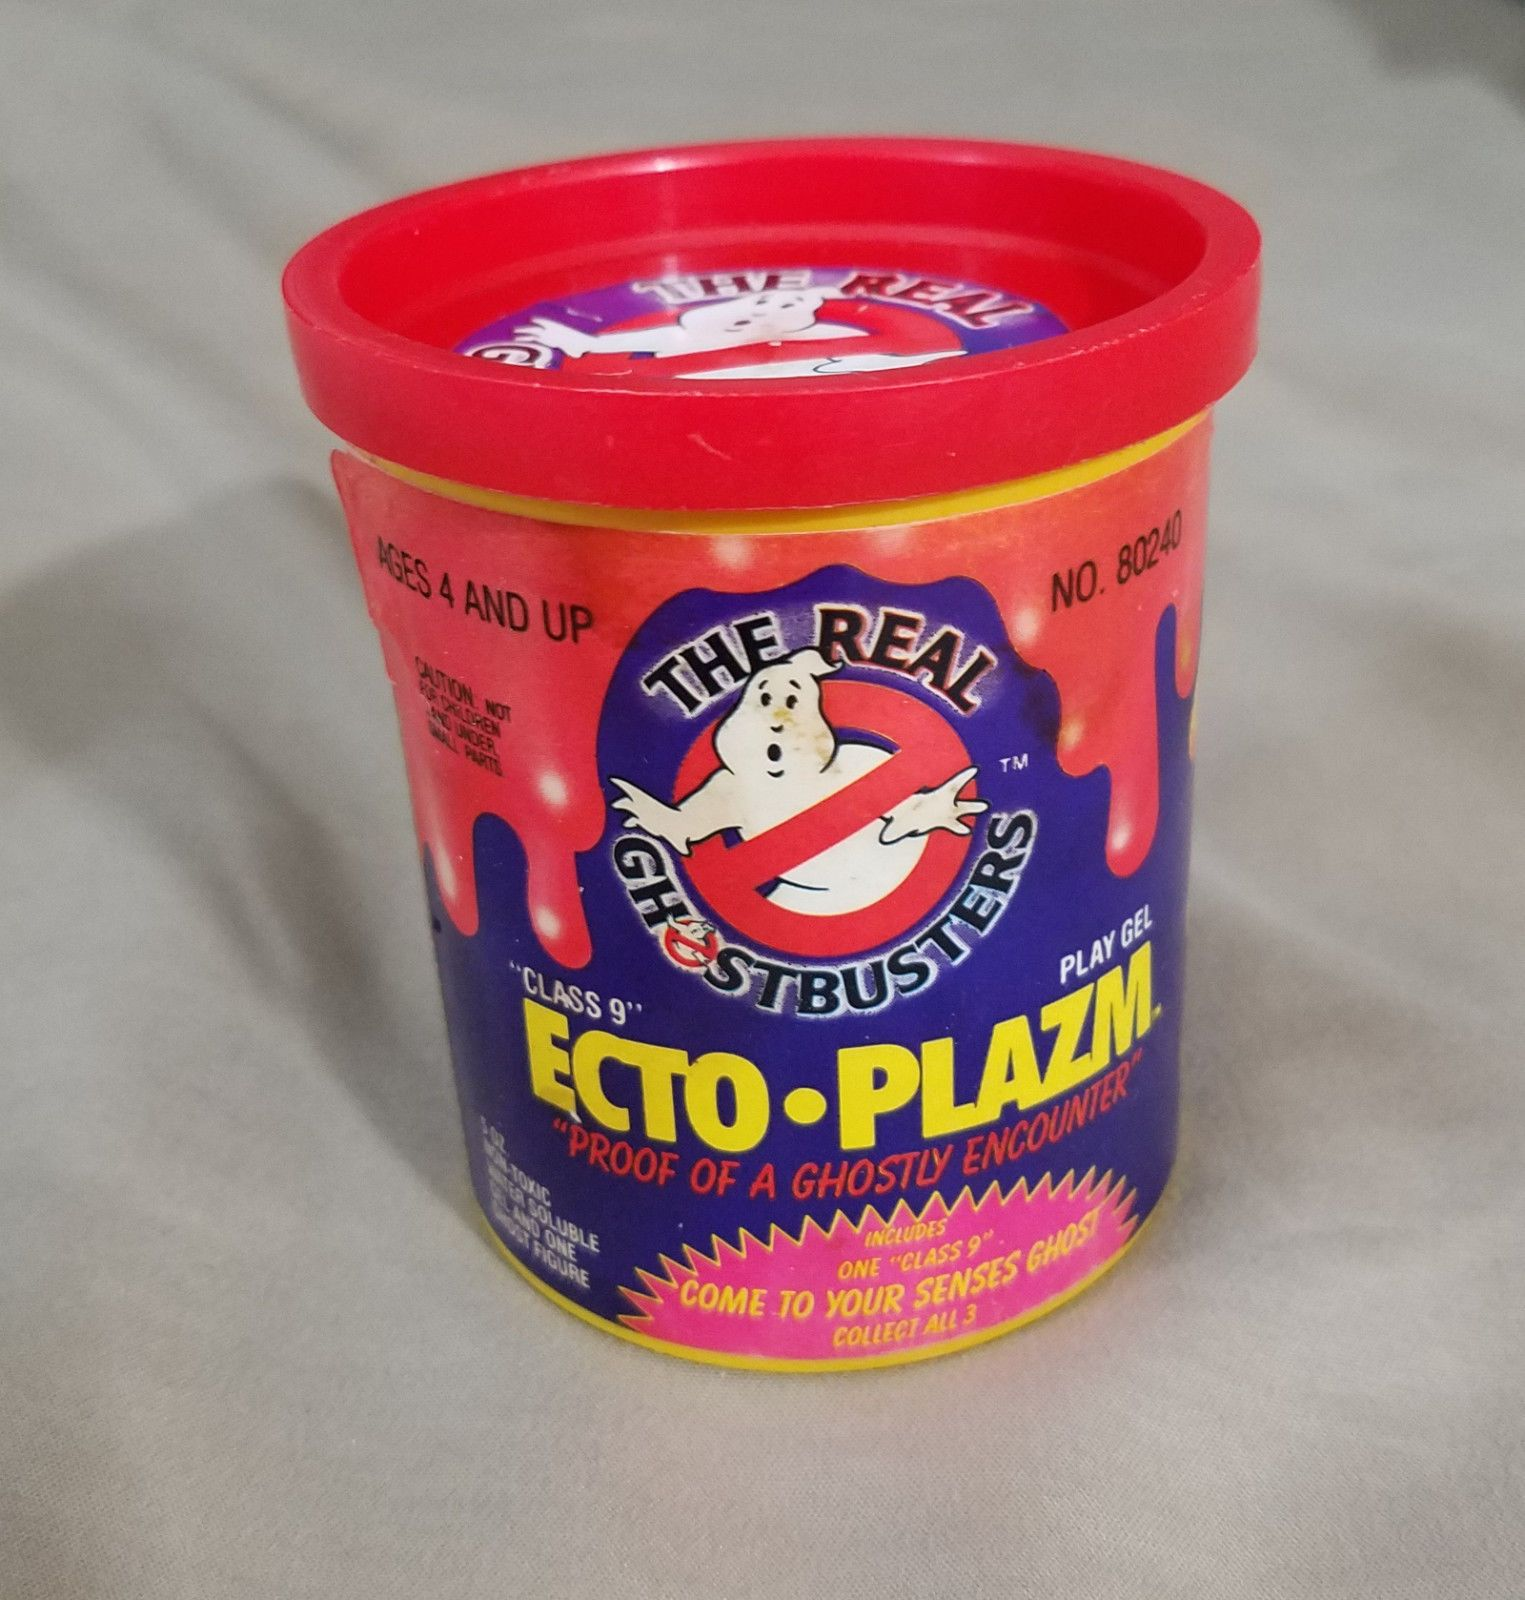 Kenner The Real Ghostbusters Ecto-Plazm Play Gel